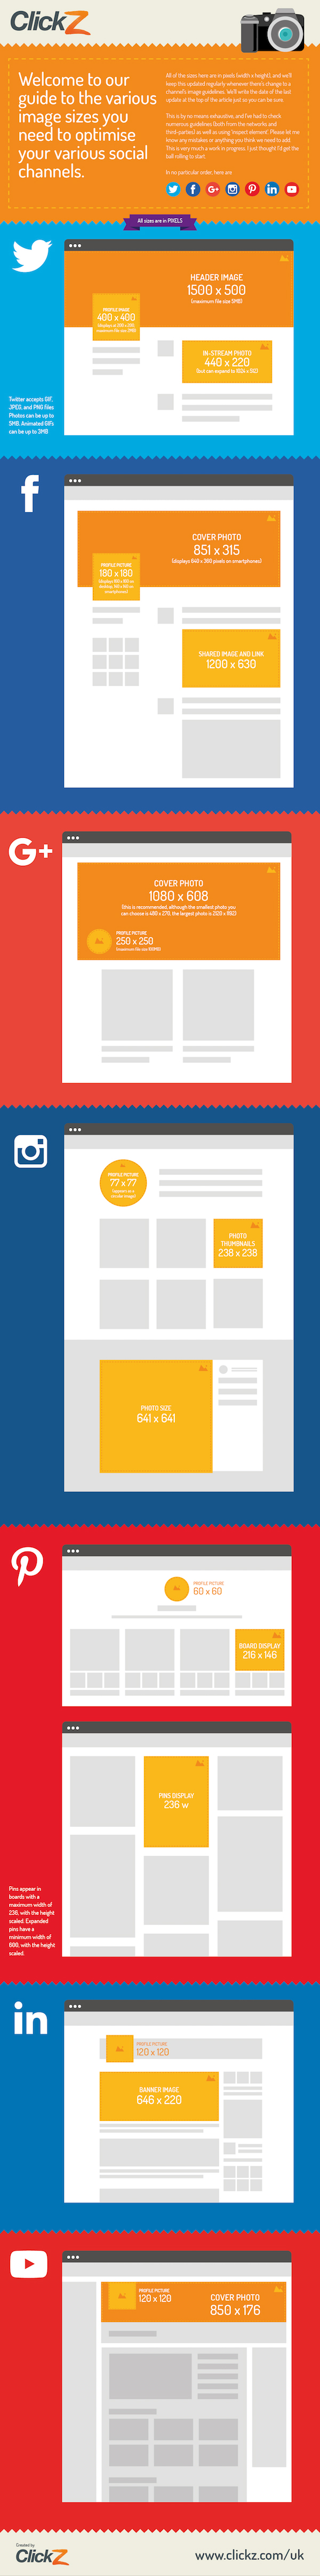 Do Your Social Media Images Look Naff Follow This Image Size Guide